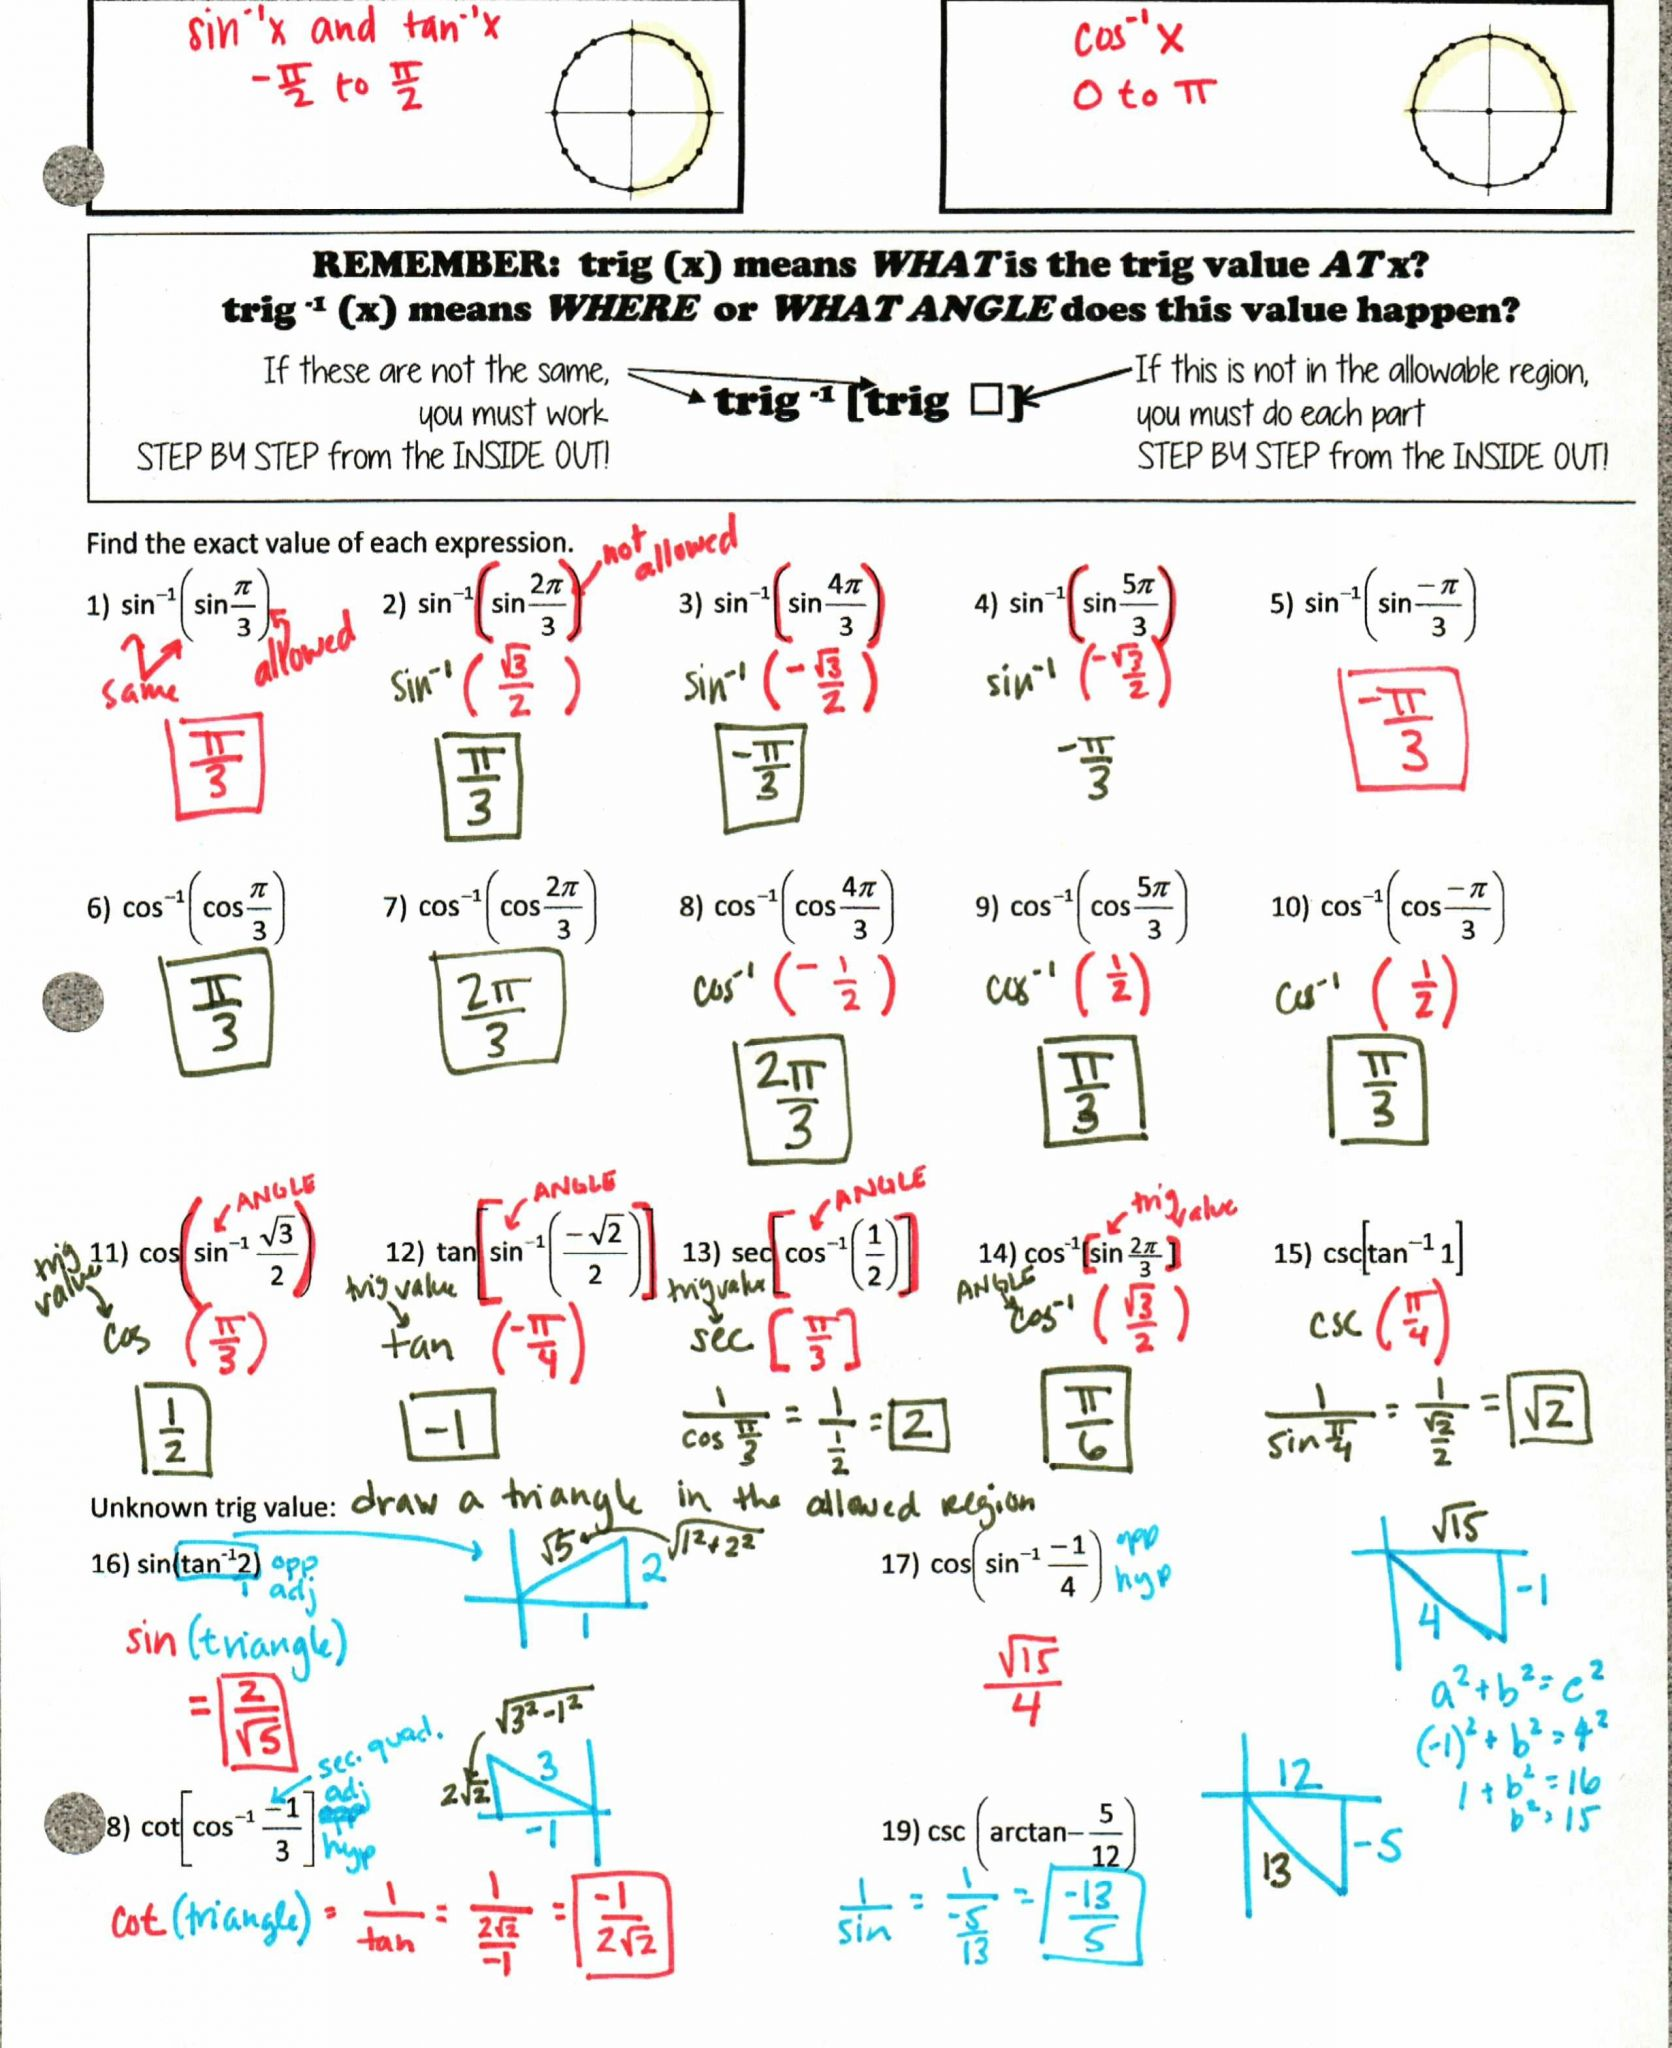 Worksheet Solutions Introduction Answers 10 6